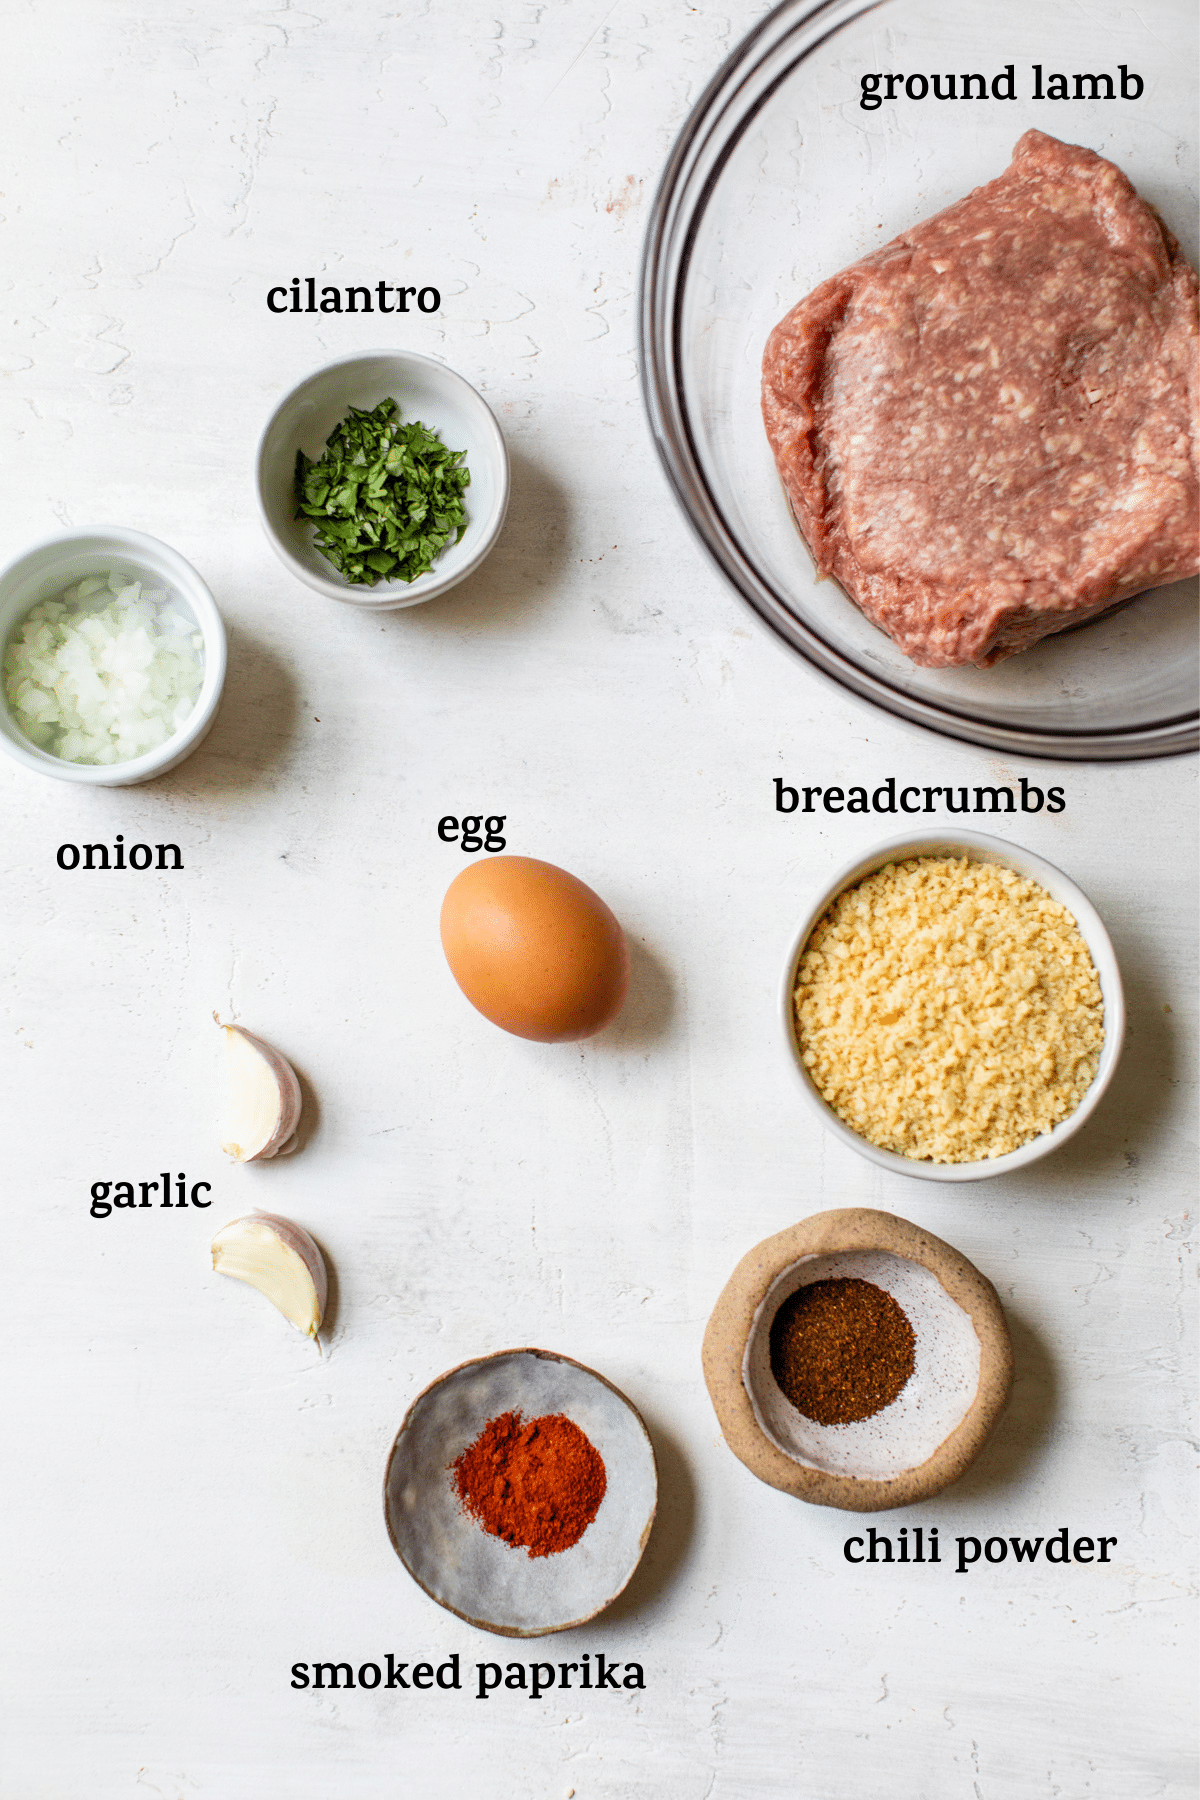 meatball ingredients with text overlay